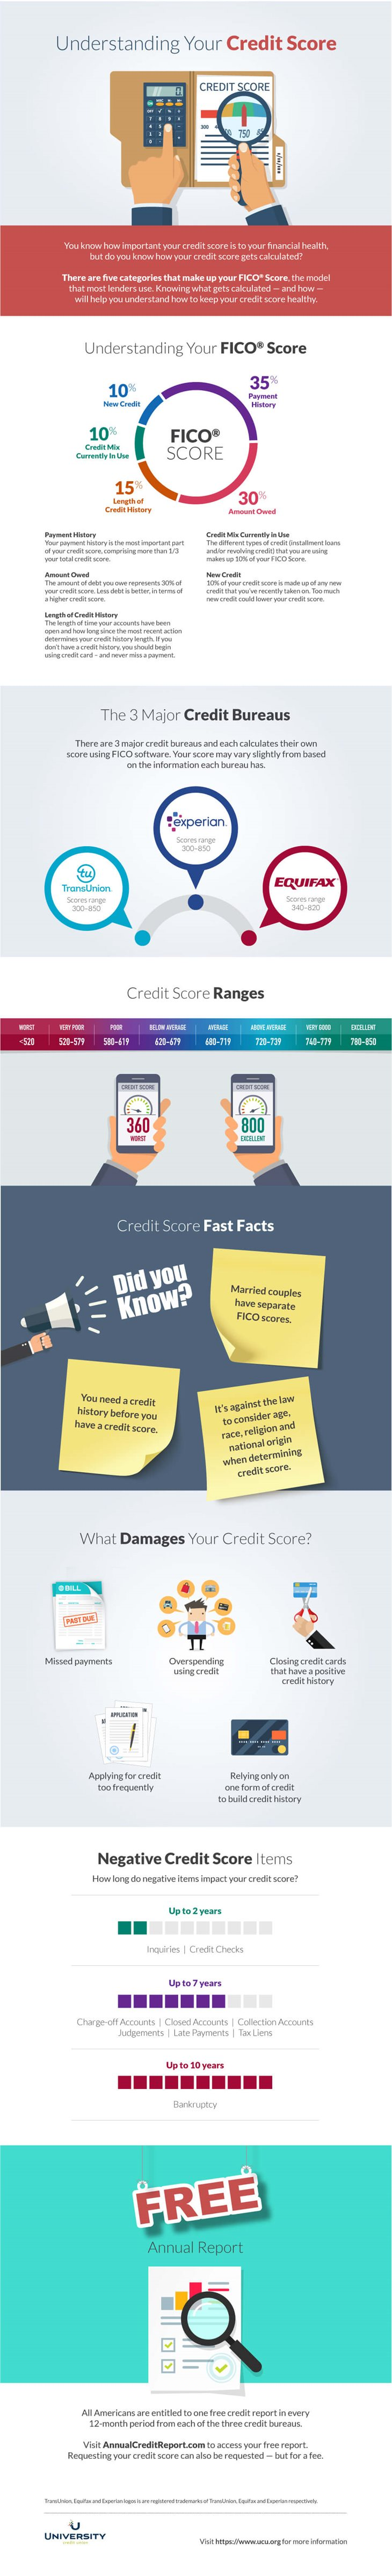 Understanding Your Credit Score. You know how important your credit score is to your financial health, but do you know how your credit score gets calculated? There are five categories that make up your FICO® Score, the model that most lenders use. Knowing what gets calculated — and how — will help you understand how to keep your credit score healthy. Understanding Your FICO® Score. Payment History. Your payment history is the most important part of your credit score, comprising more than 1/3 your total credit score. Amount Owed. The amount of debt you owe represents 30% of your credit score. Less debt is better, in terms of a higher credit score. Length of Credit History. The length of time your accounts have been open and how long since the most recent action